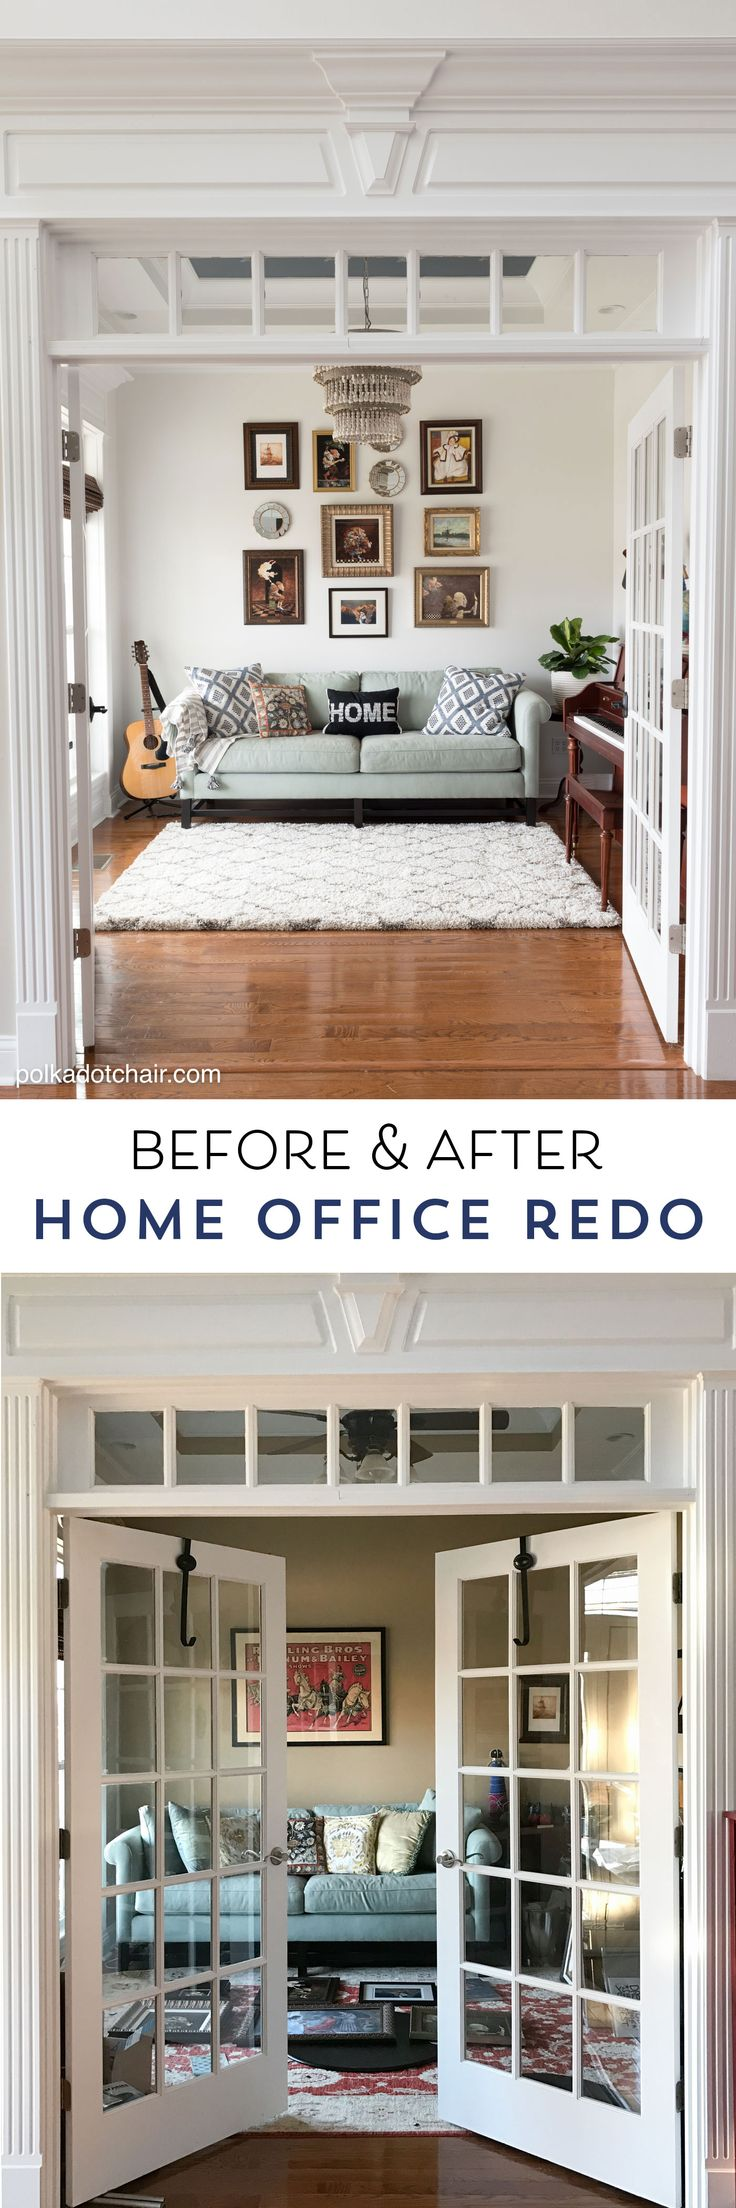 Before After Simple Room Refresh With Lots Of DIY Decorating Ideas